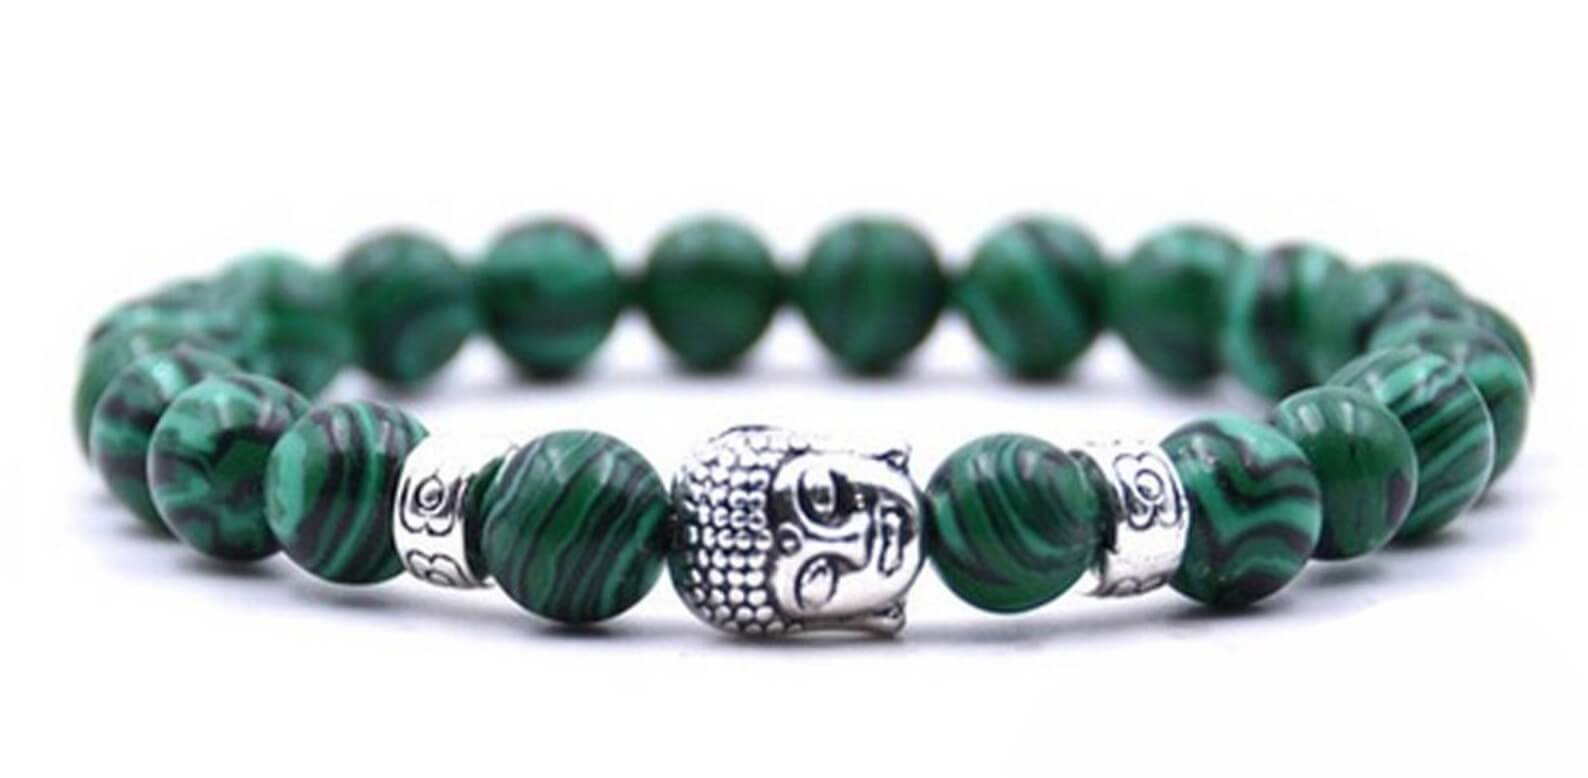 malachite stone meaning and benefits